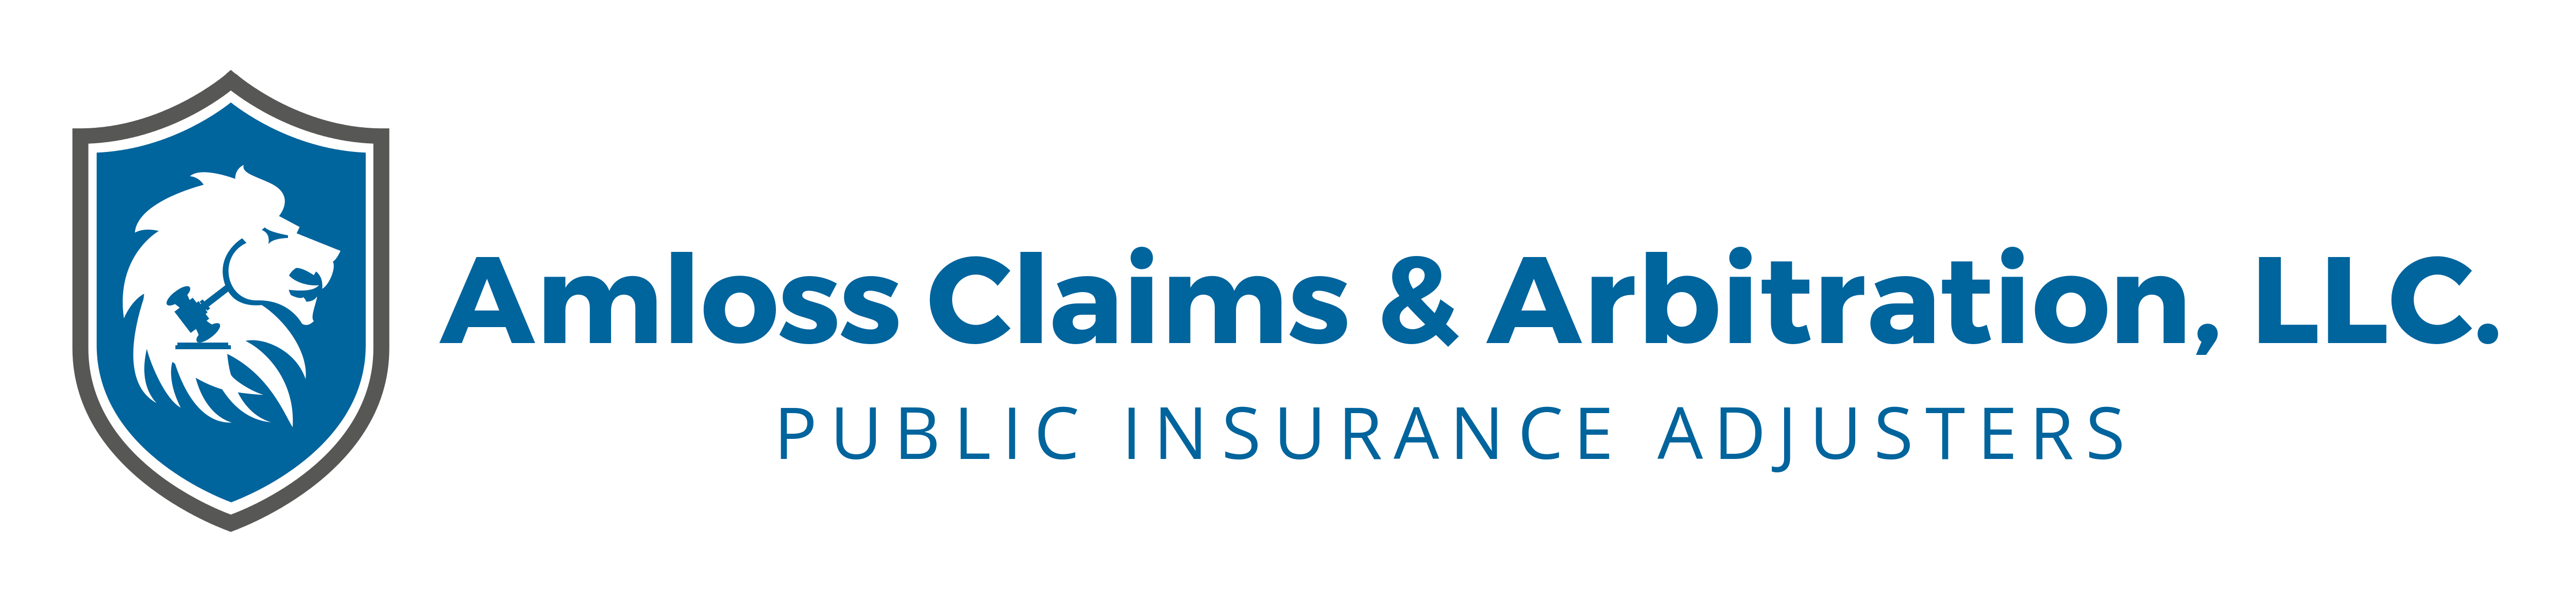 Amloss Claims & Arbitration